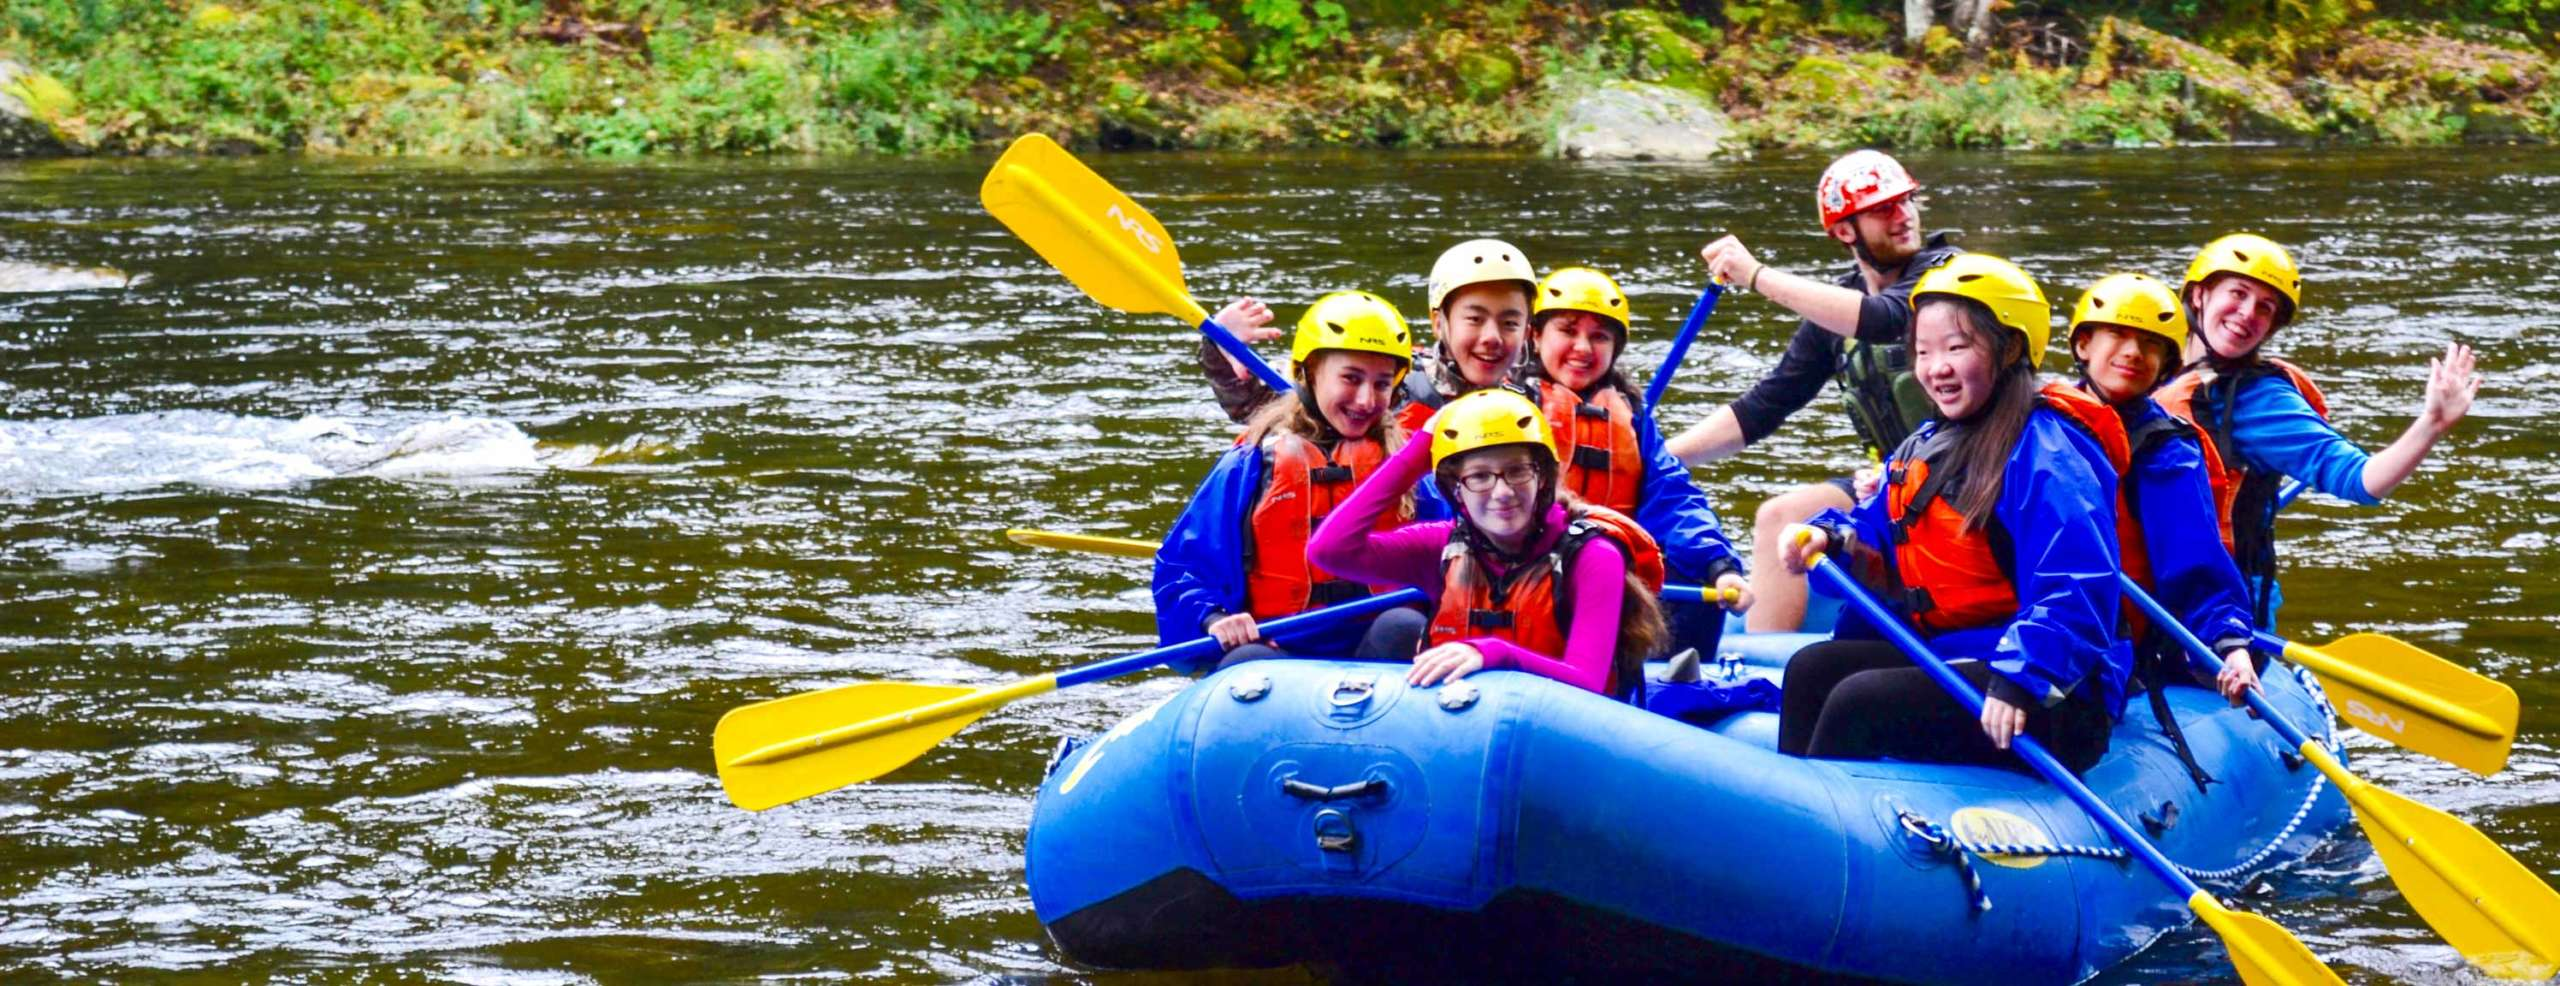 Youth group paddling a raft down a calm river